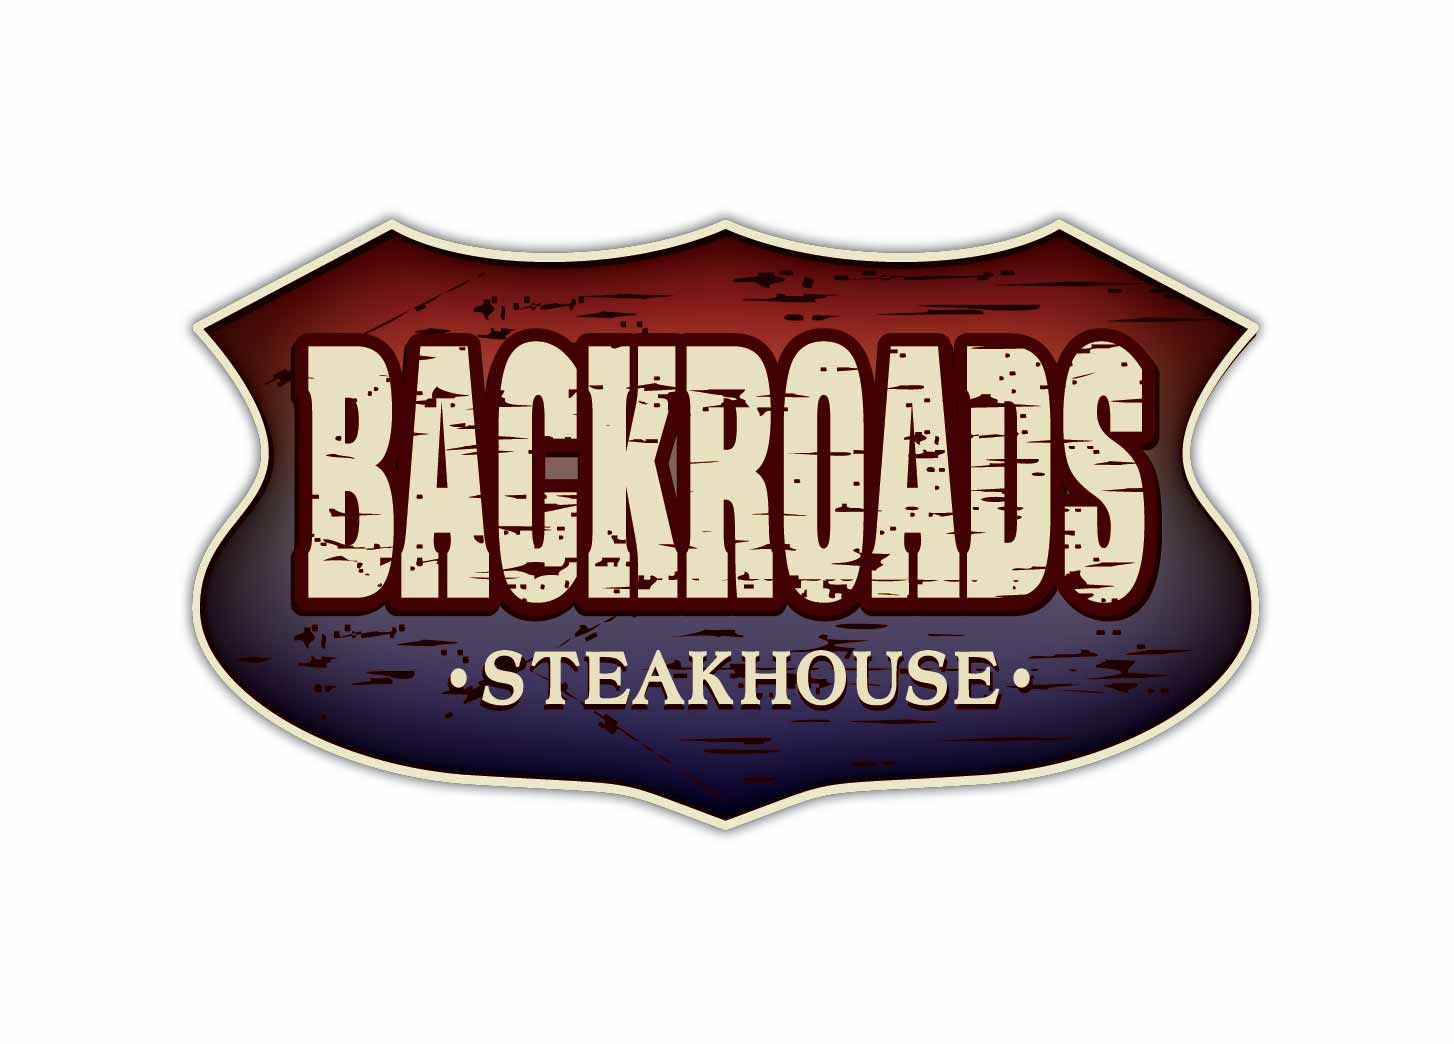 Backroads Steakhouse